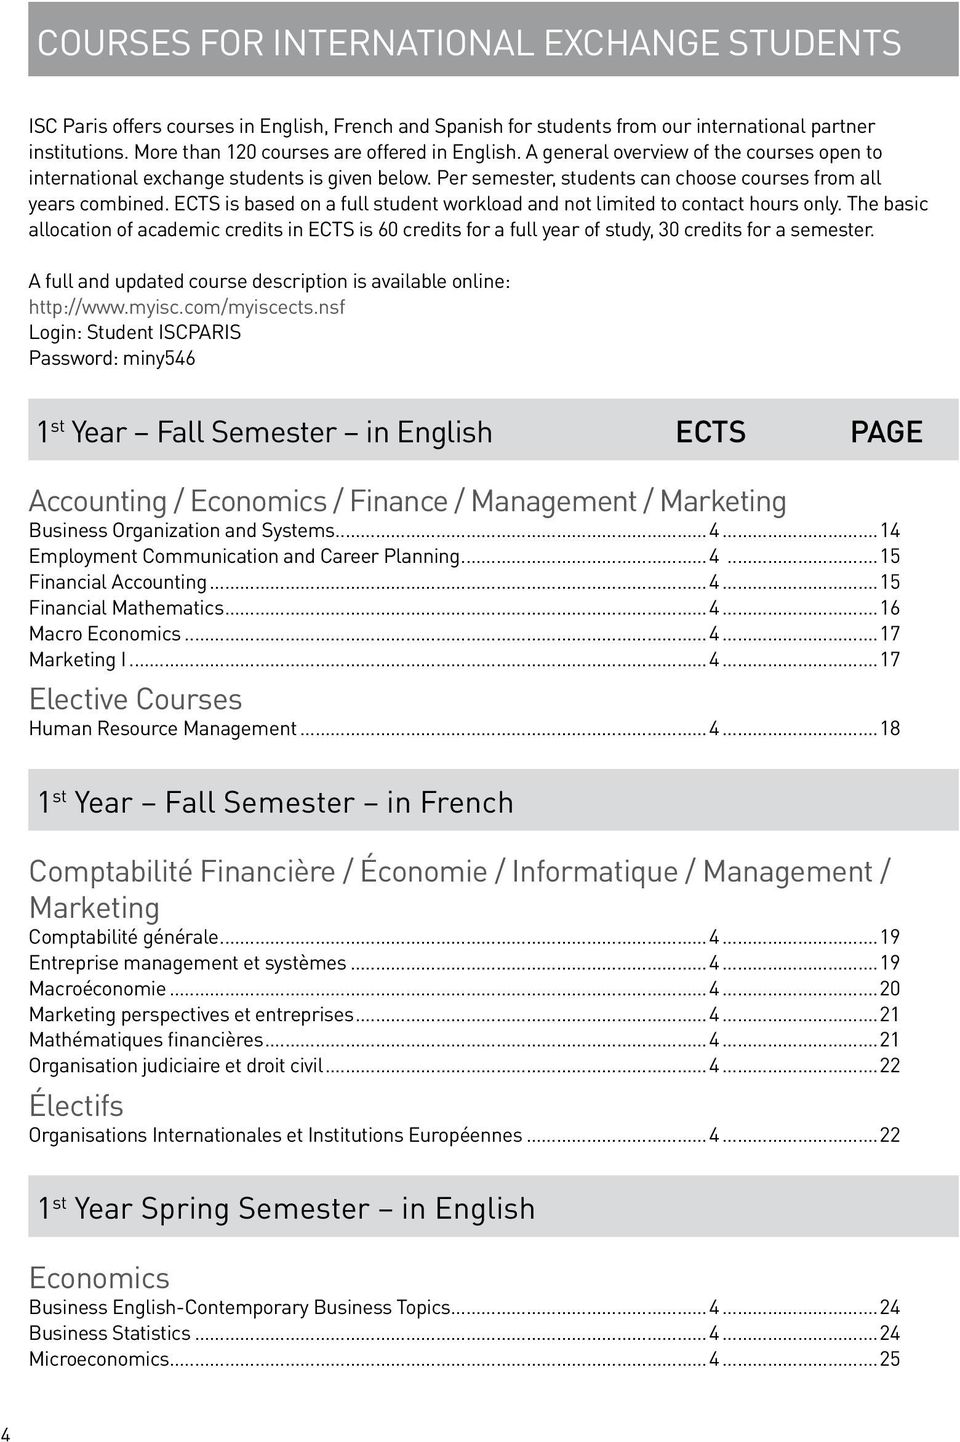 Per semester, students can choose courses from all years combined. ECTS is based on a full student workload and not limited to contact hours only.